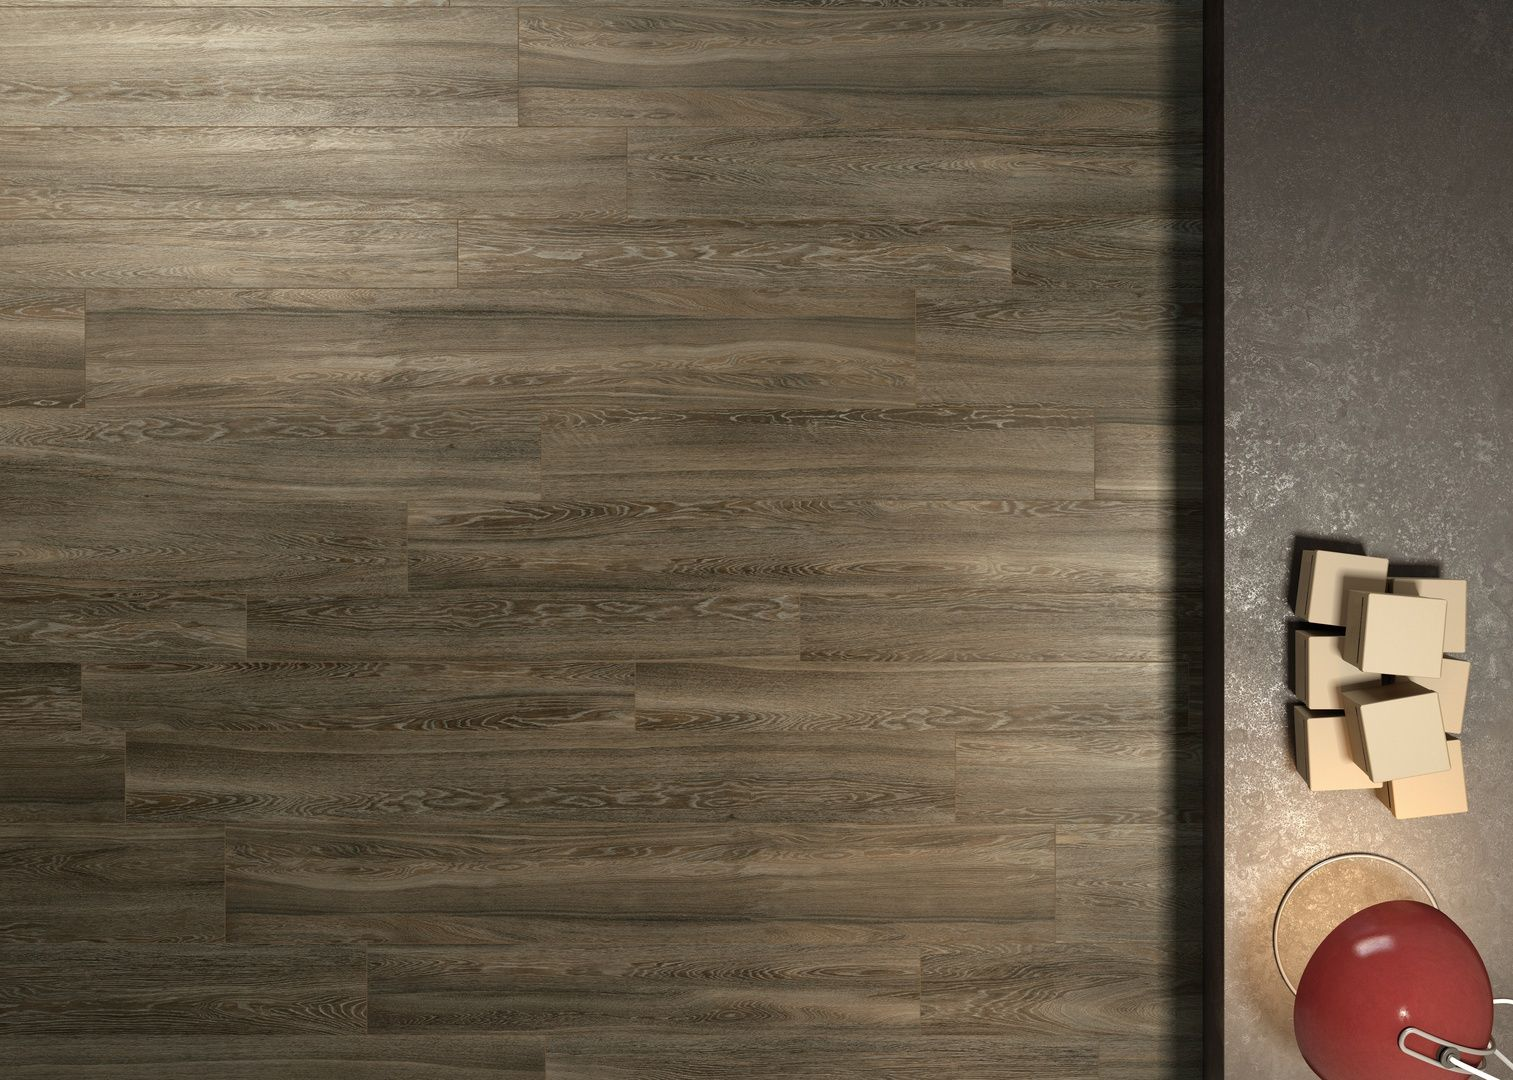 Resurgence by galleria stone and tile wood look floor tile in resurgence by galleria stone and tile wood look floor tile in reddish brown dailygadgetfo Choice Image